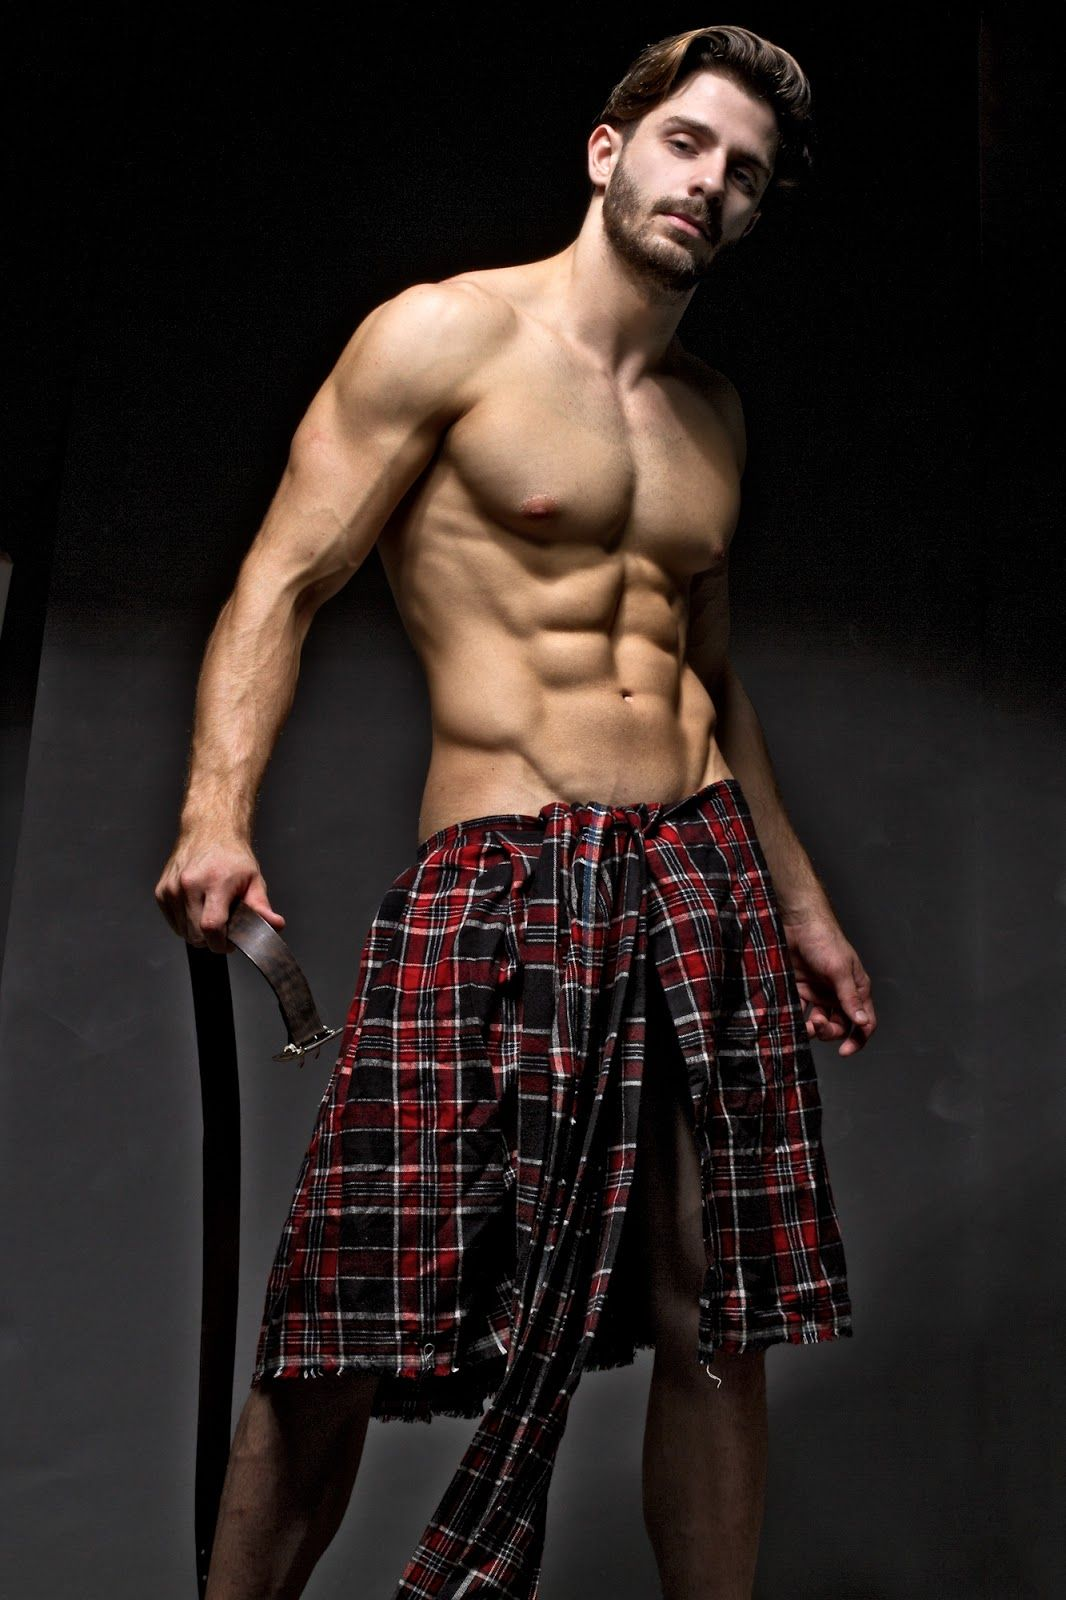 Pin by stephen a on hot men in kilts pinterest kilts guy and